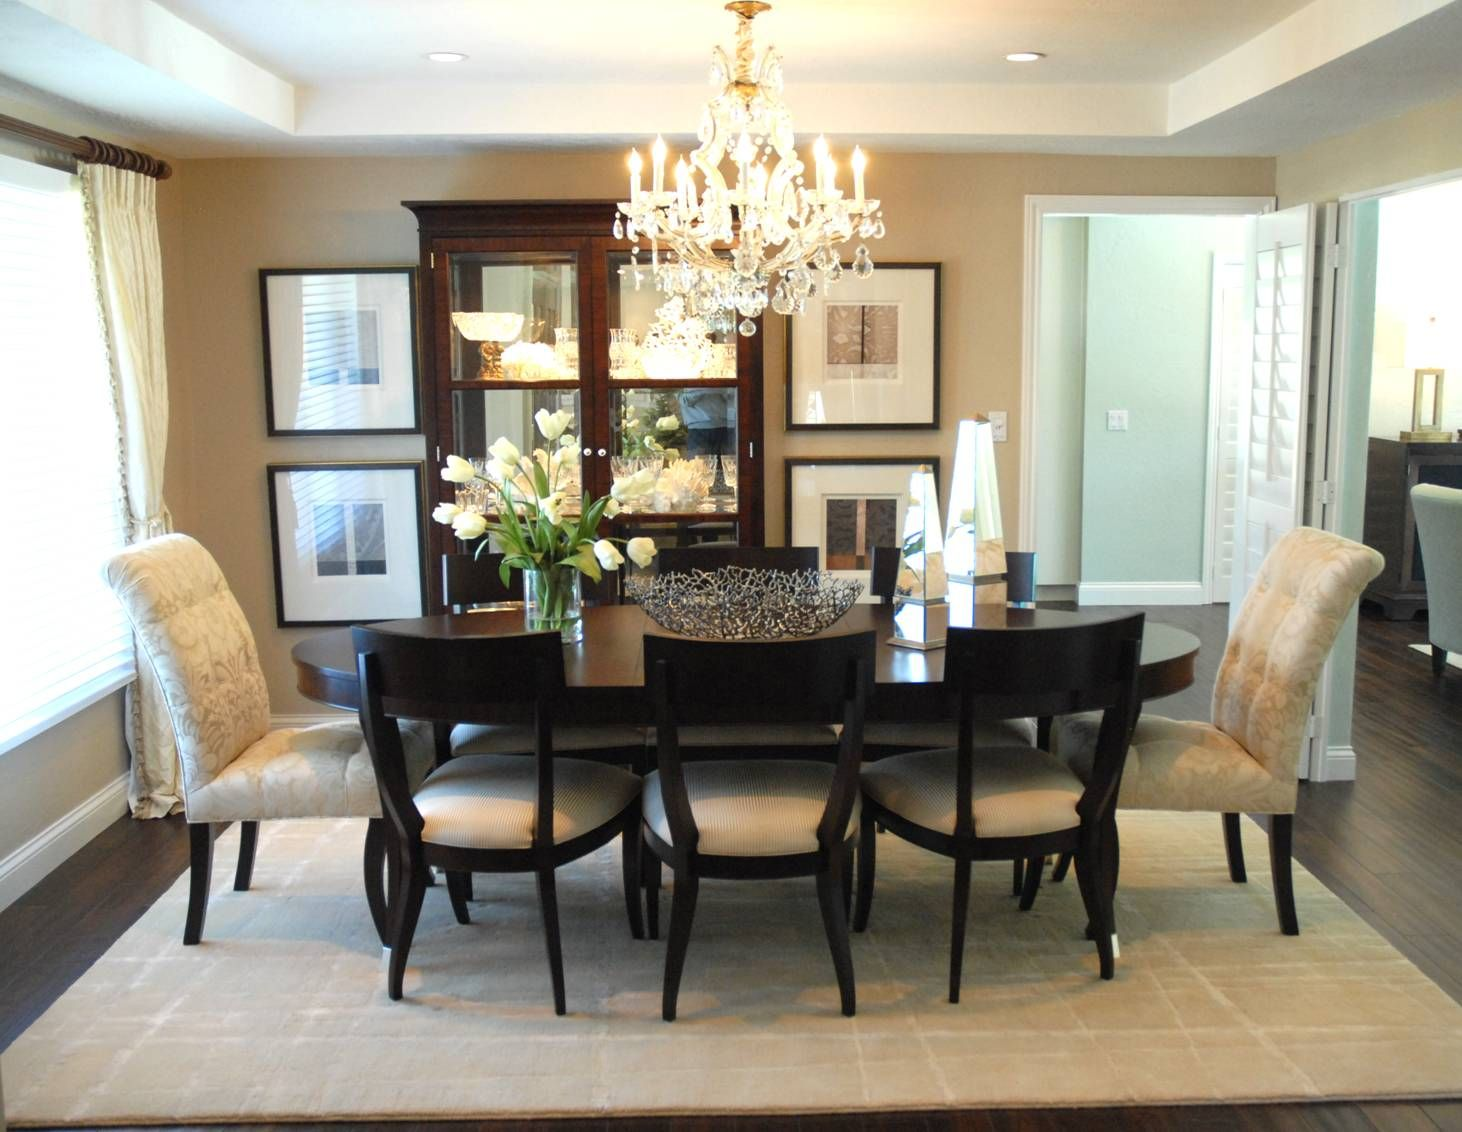 Dining Room Designed By Condace Adams. Ethan Allen, Torrance CA.